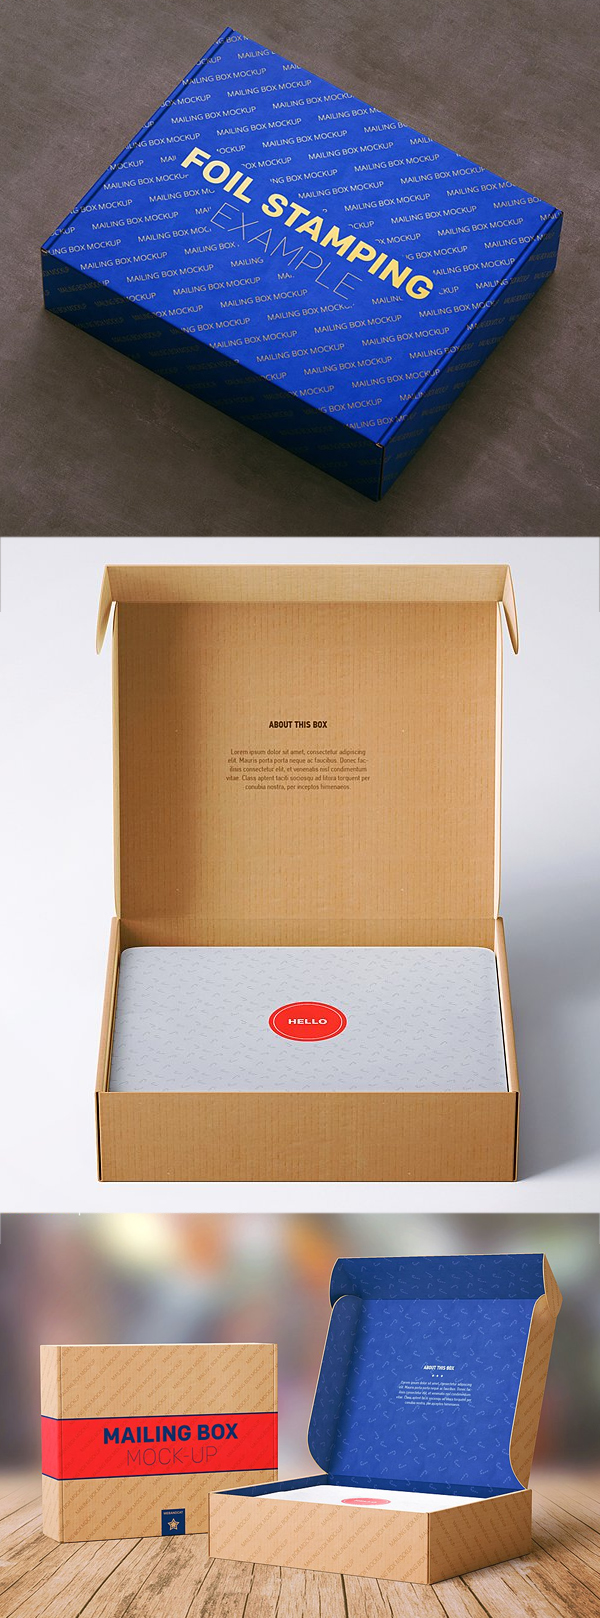 Shipping | Mailing Box Mock-up